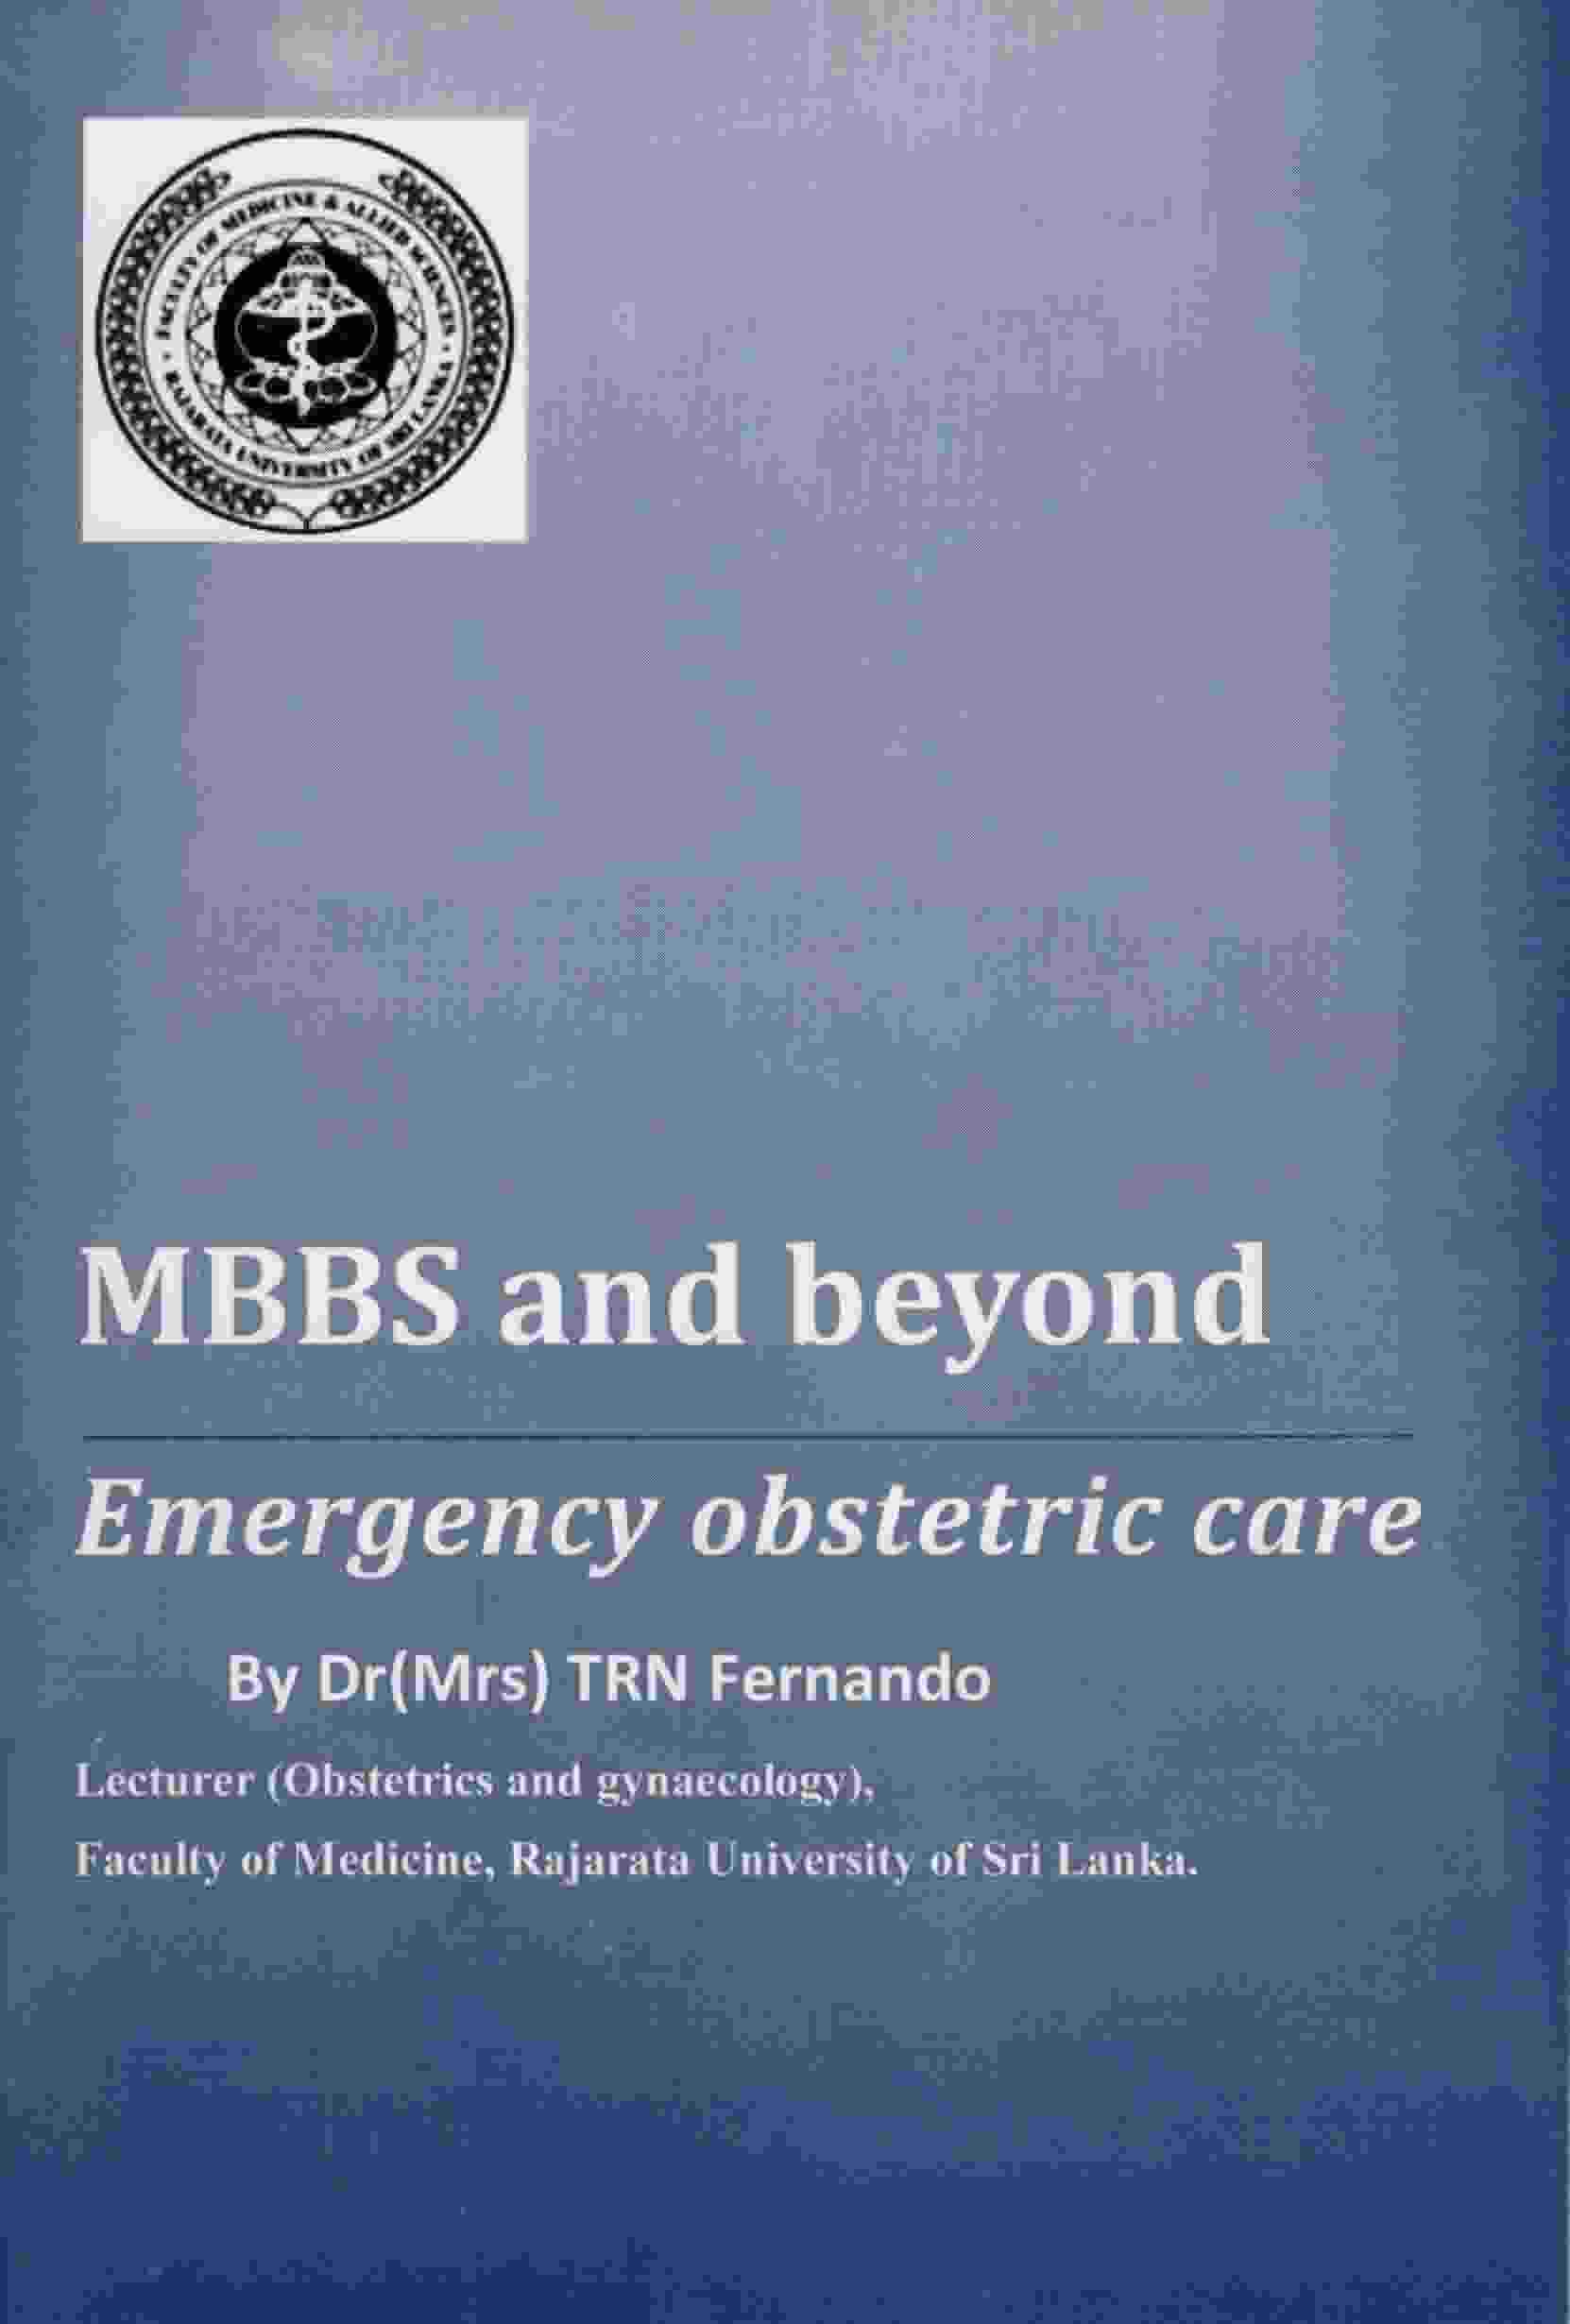 MBBS AND BEYOND EMERGENCY OBSTETRIC CARE